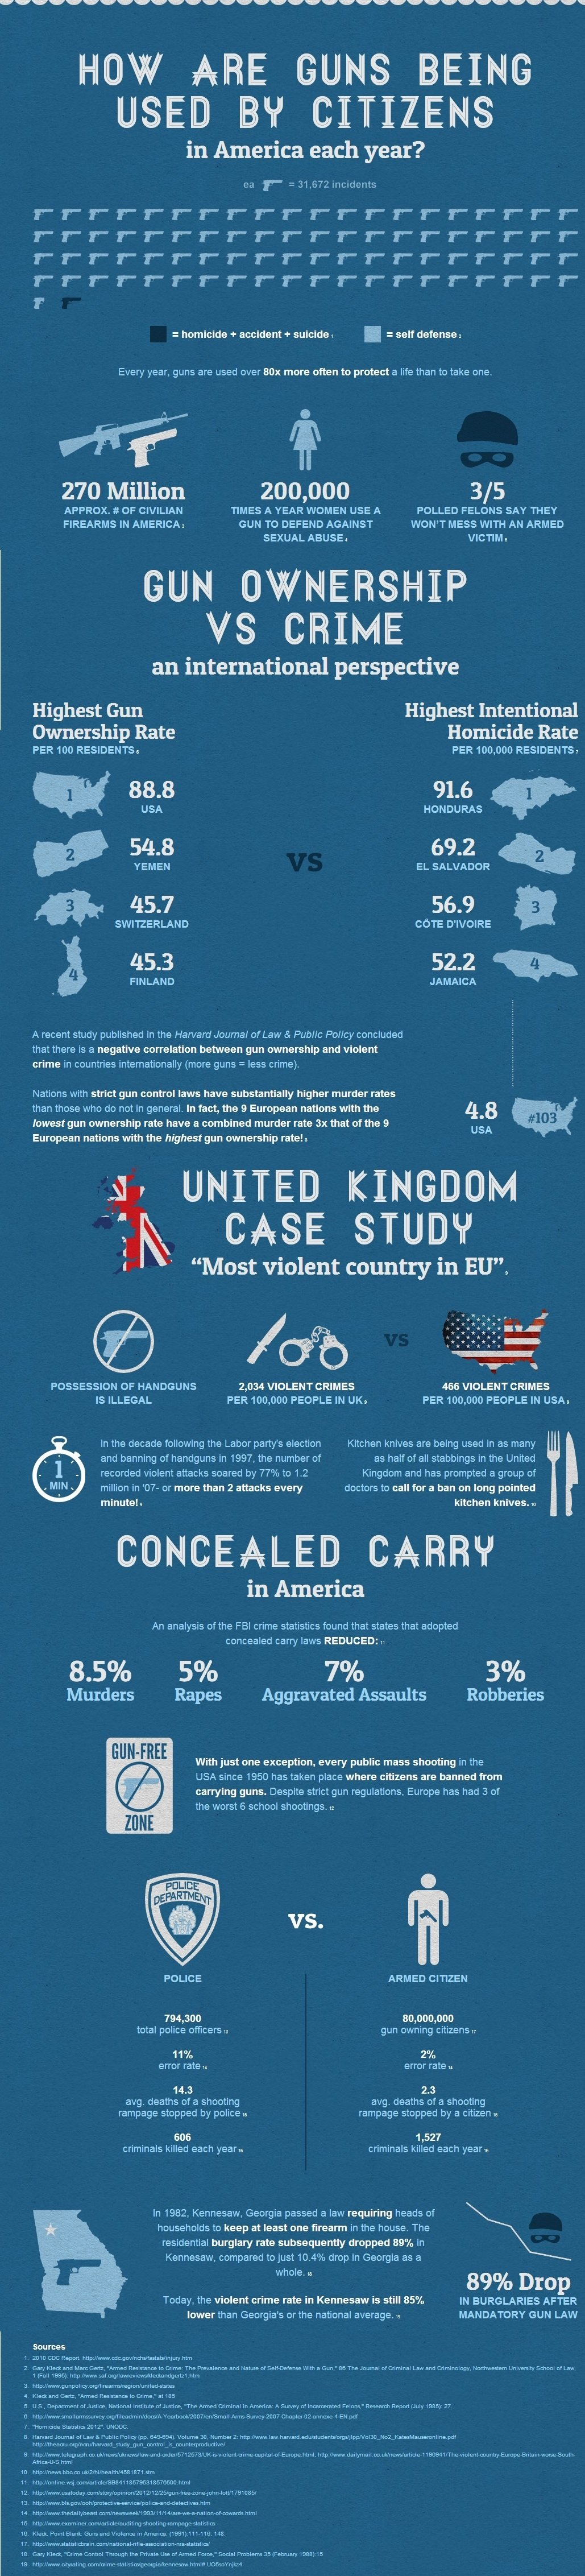 how_are_guns_used_by_citizensvia infothread dot org